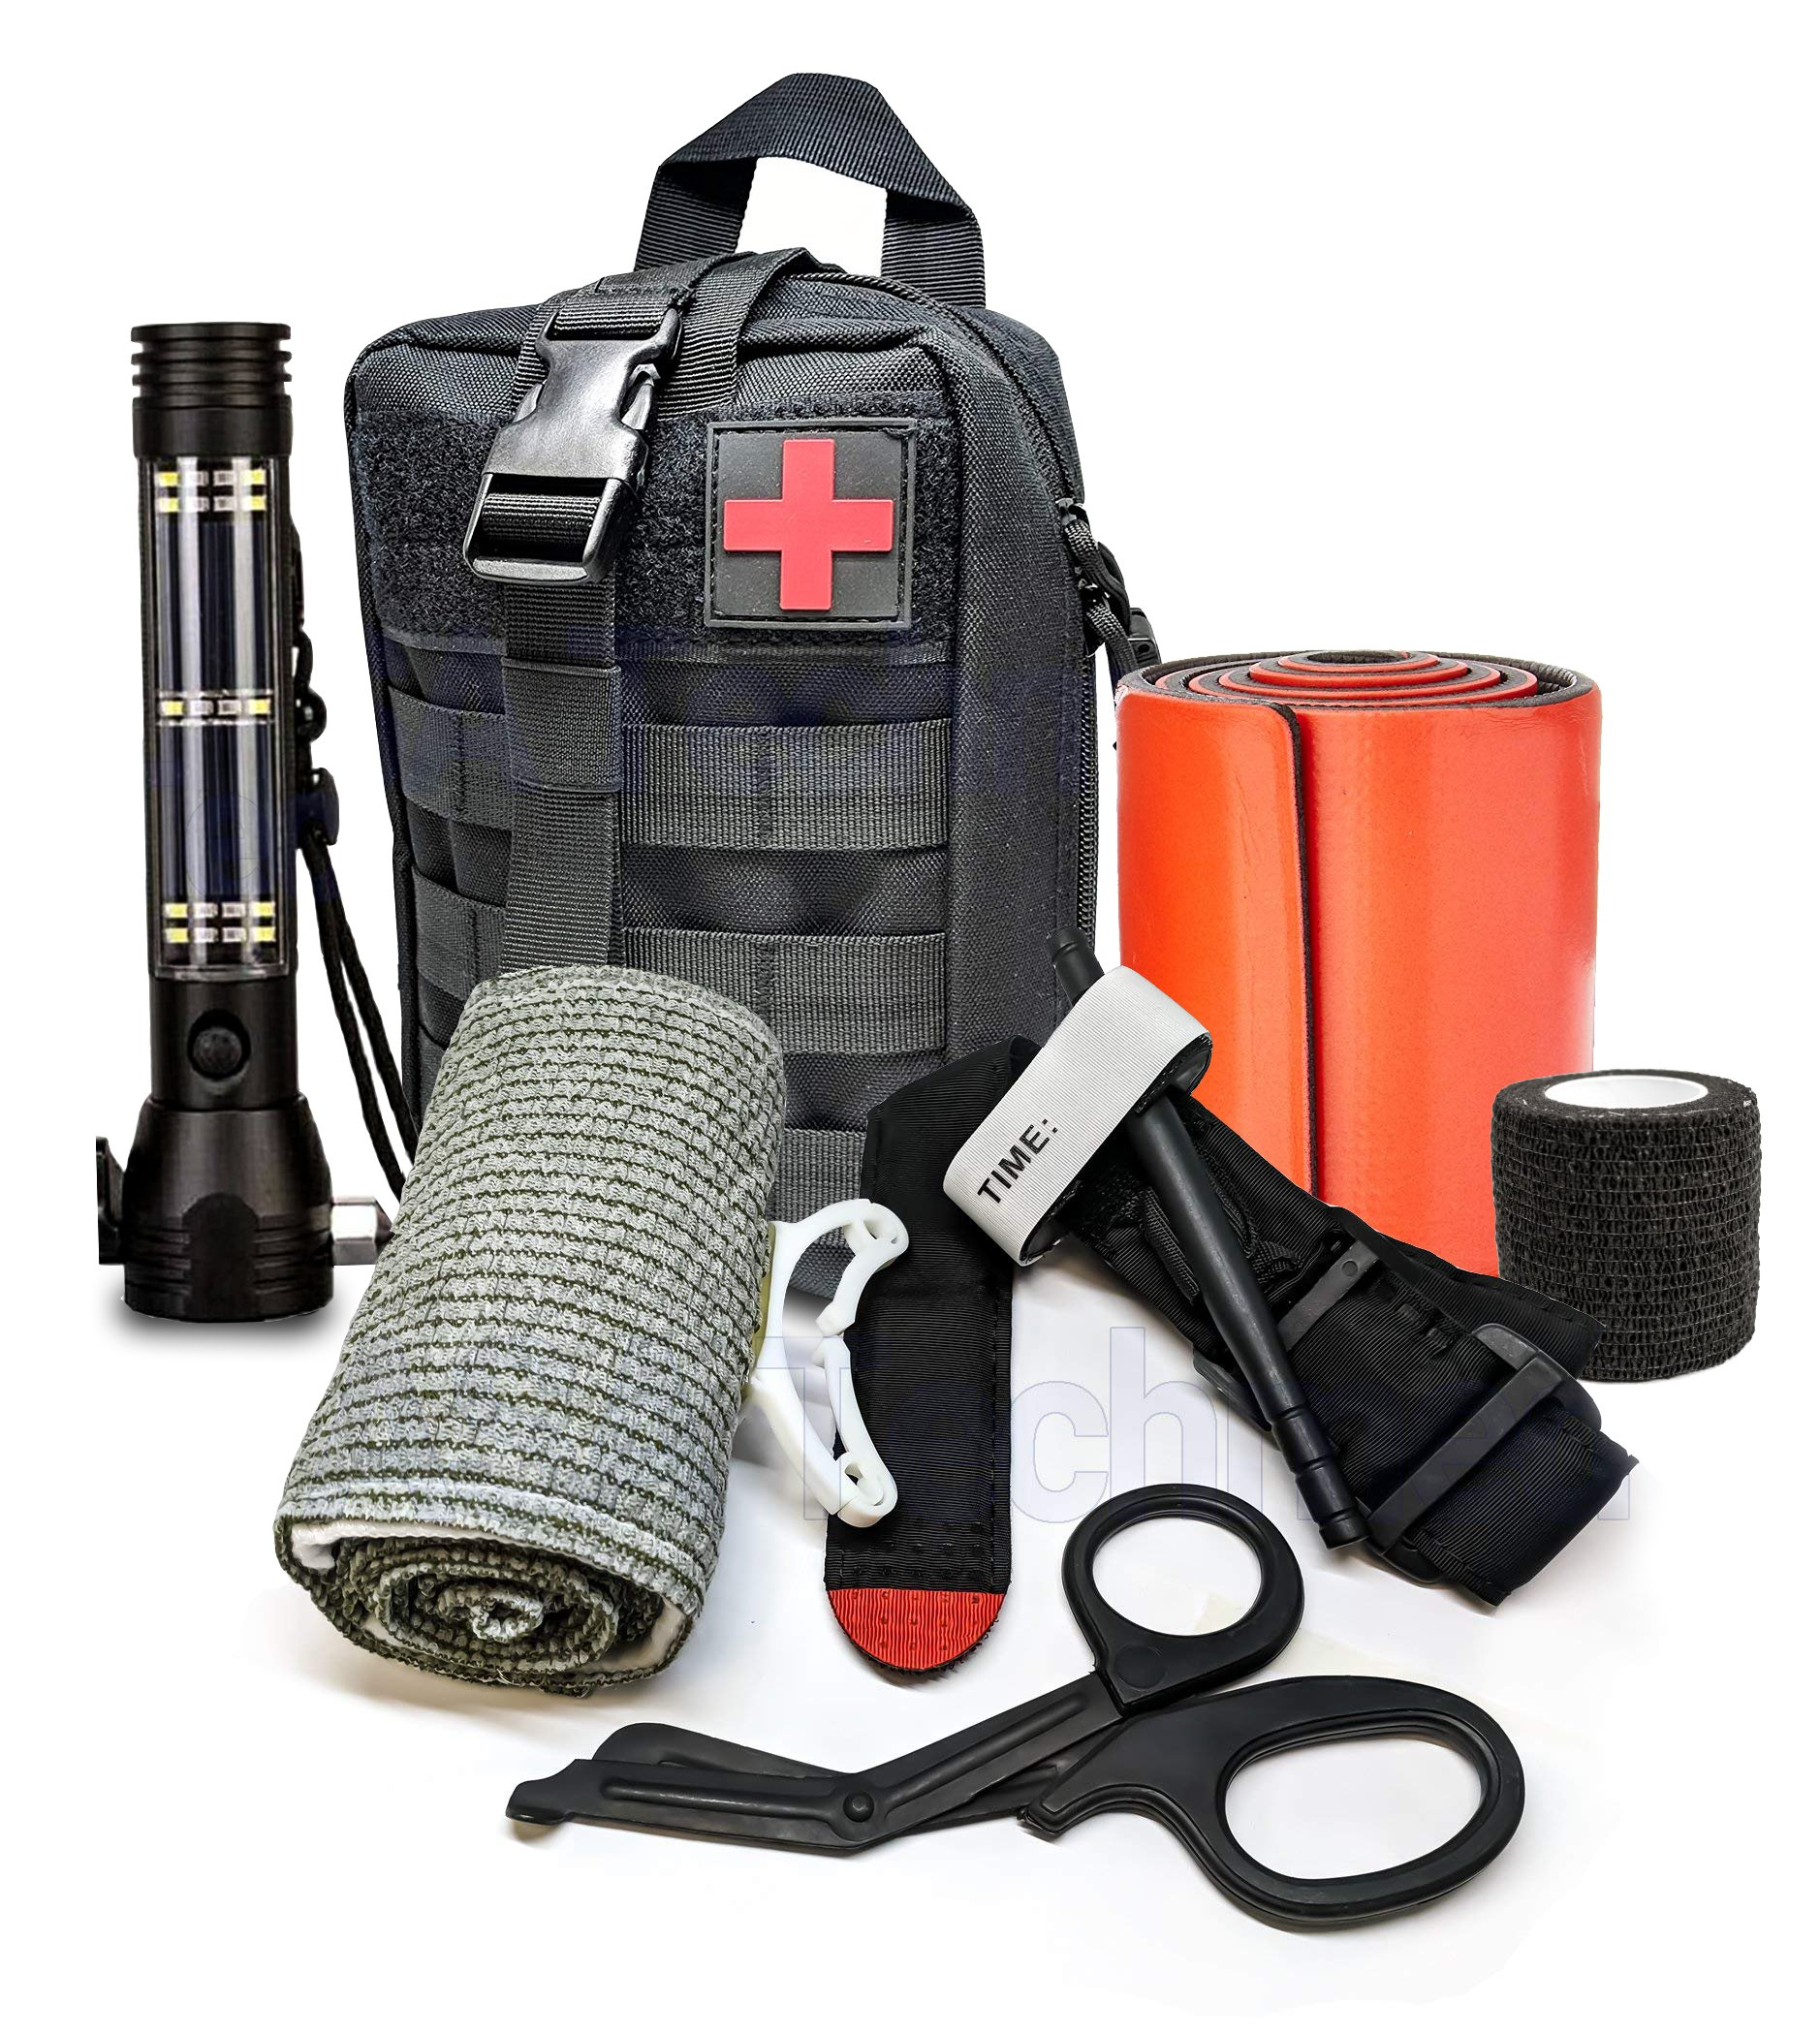 Advance Military Style First Aid Survival Kit Emergency Kit Earthquake Survival Kit IFAK Molle Bag for Car Home Work Office Boat or Adventures + Roadside Rescuer 9-IN-1 Gadget Solar Powered Flashlight by ASATechmed (Image #2)